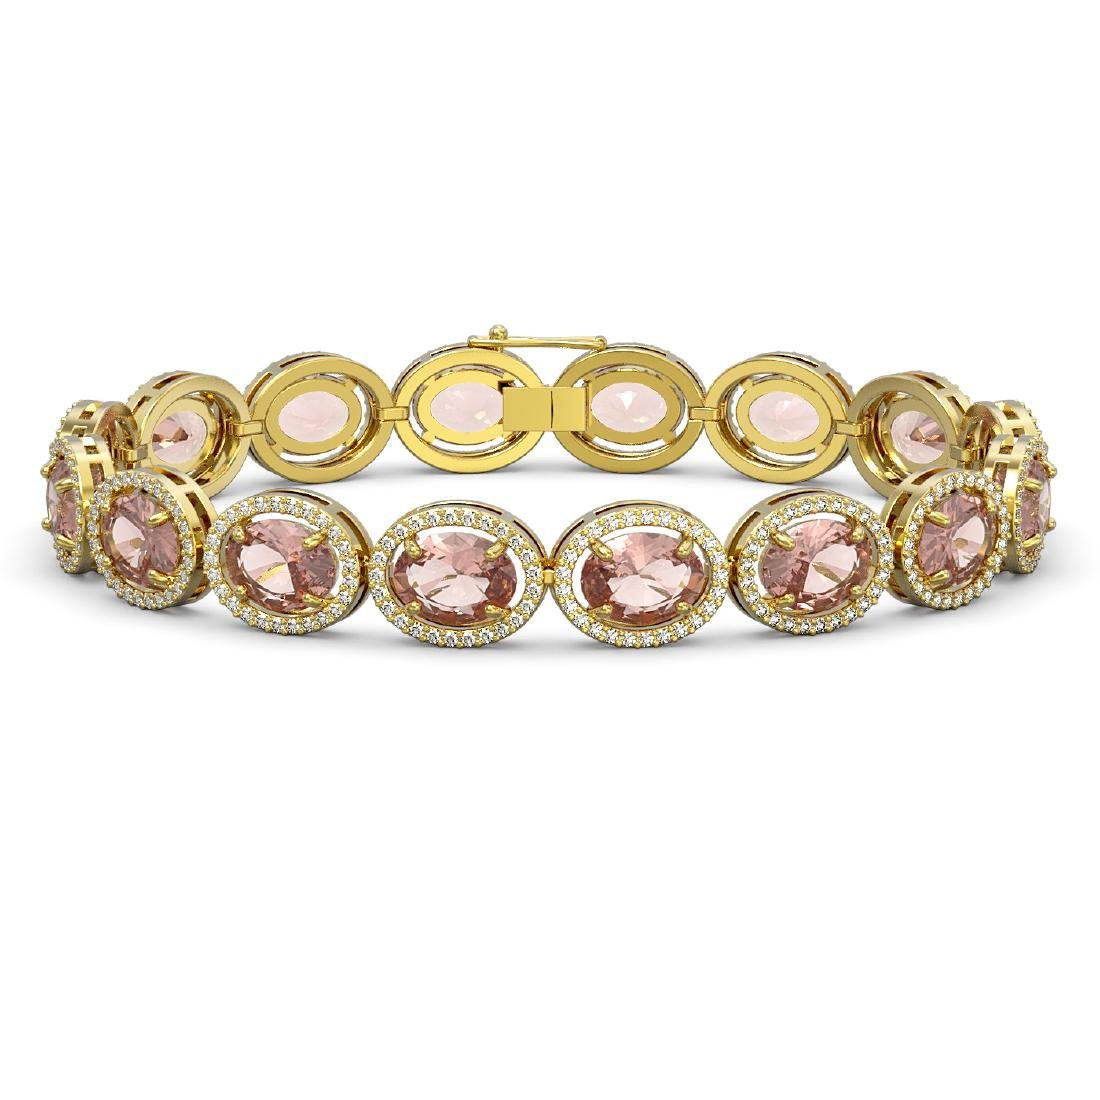 22.8 CTW Morganite & Diamond Halo Bracelet 10K Yellow